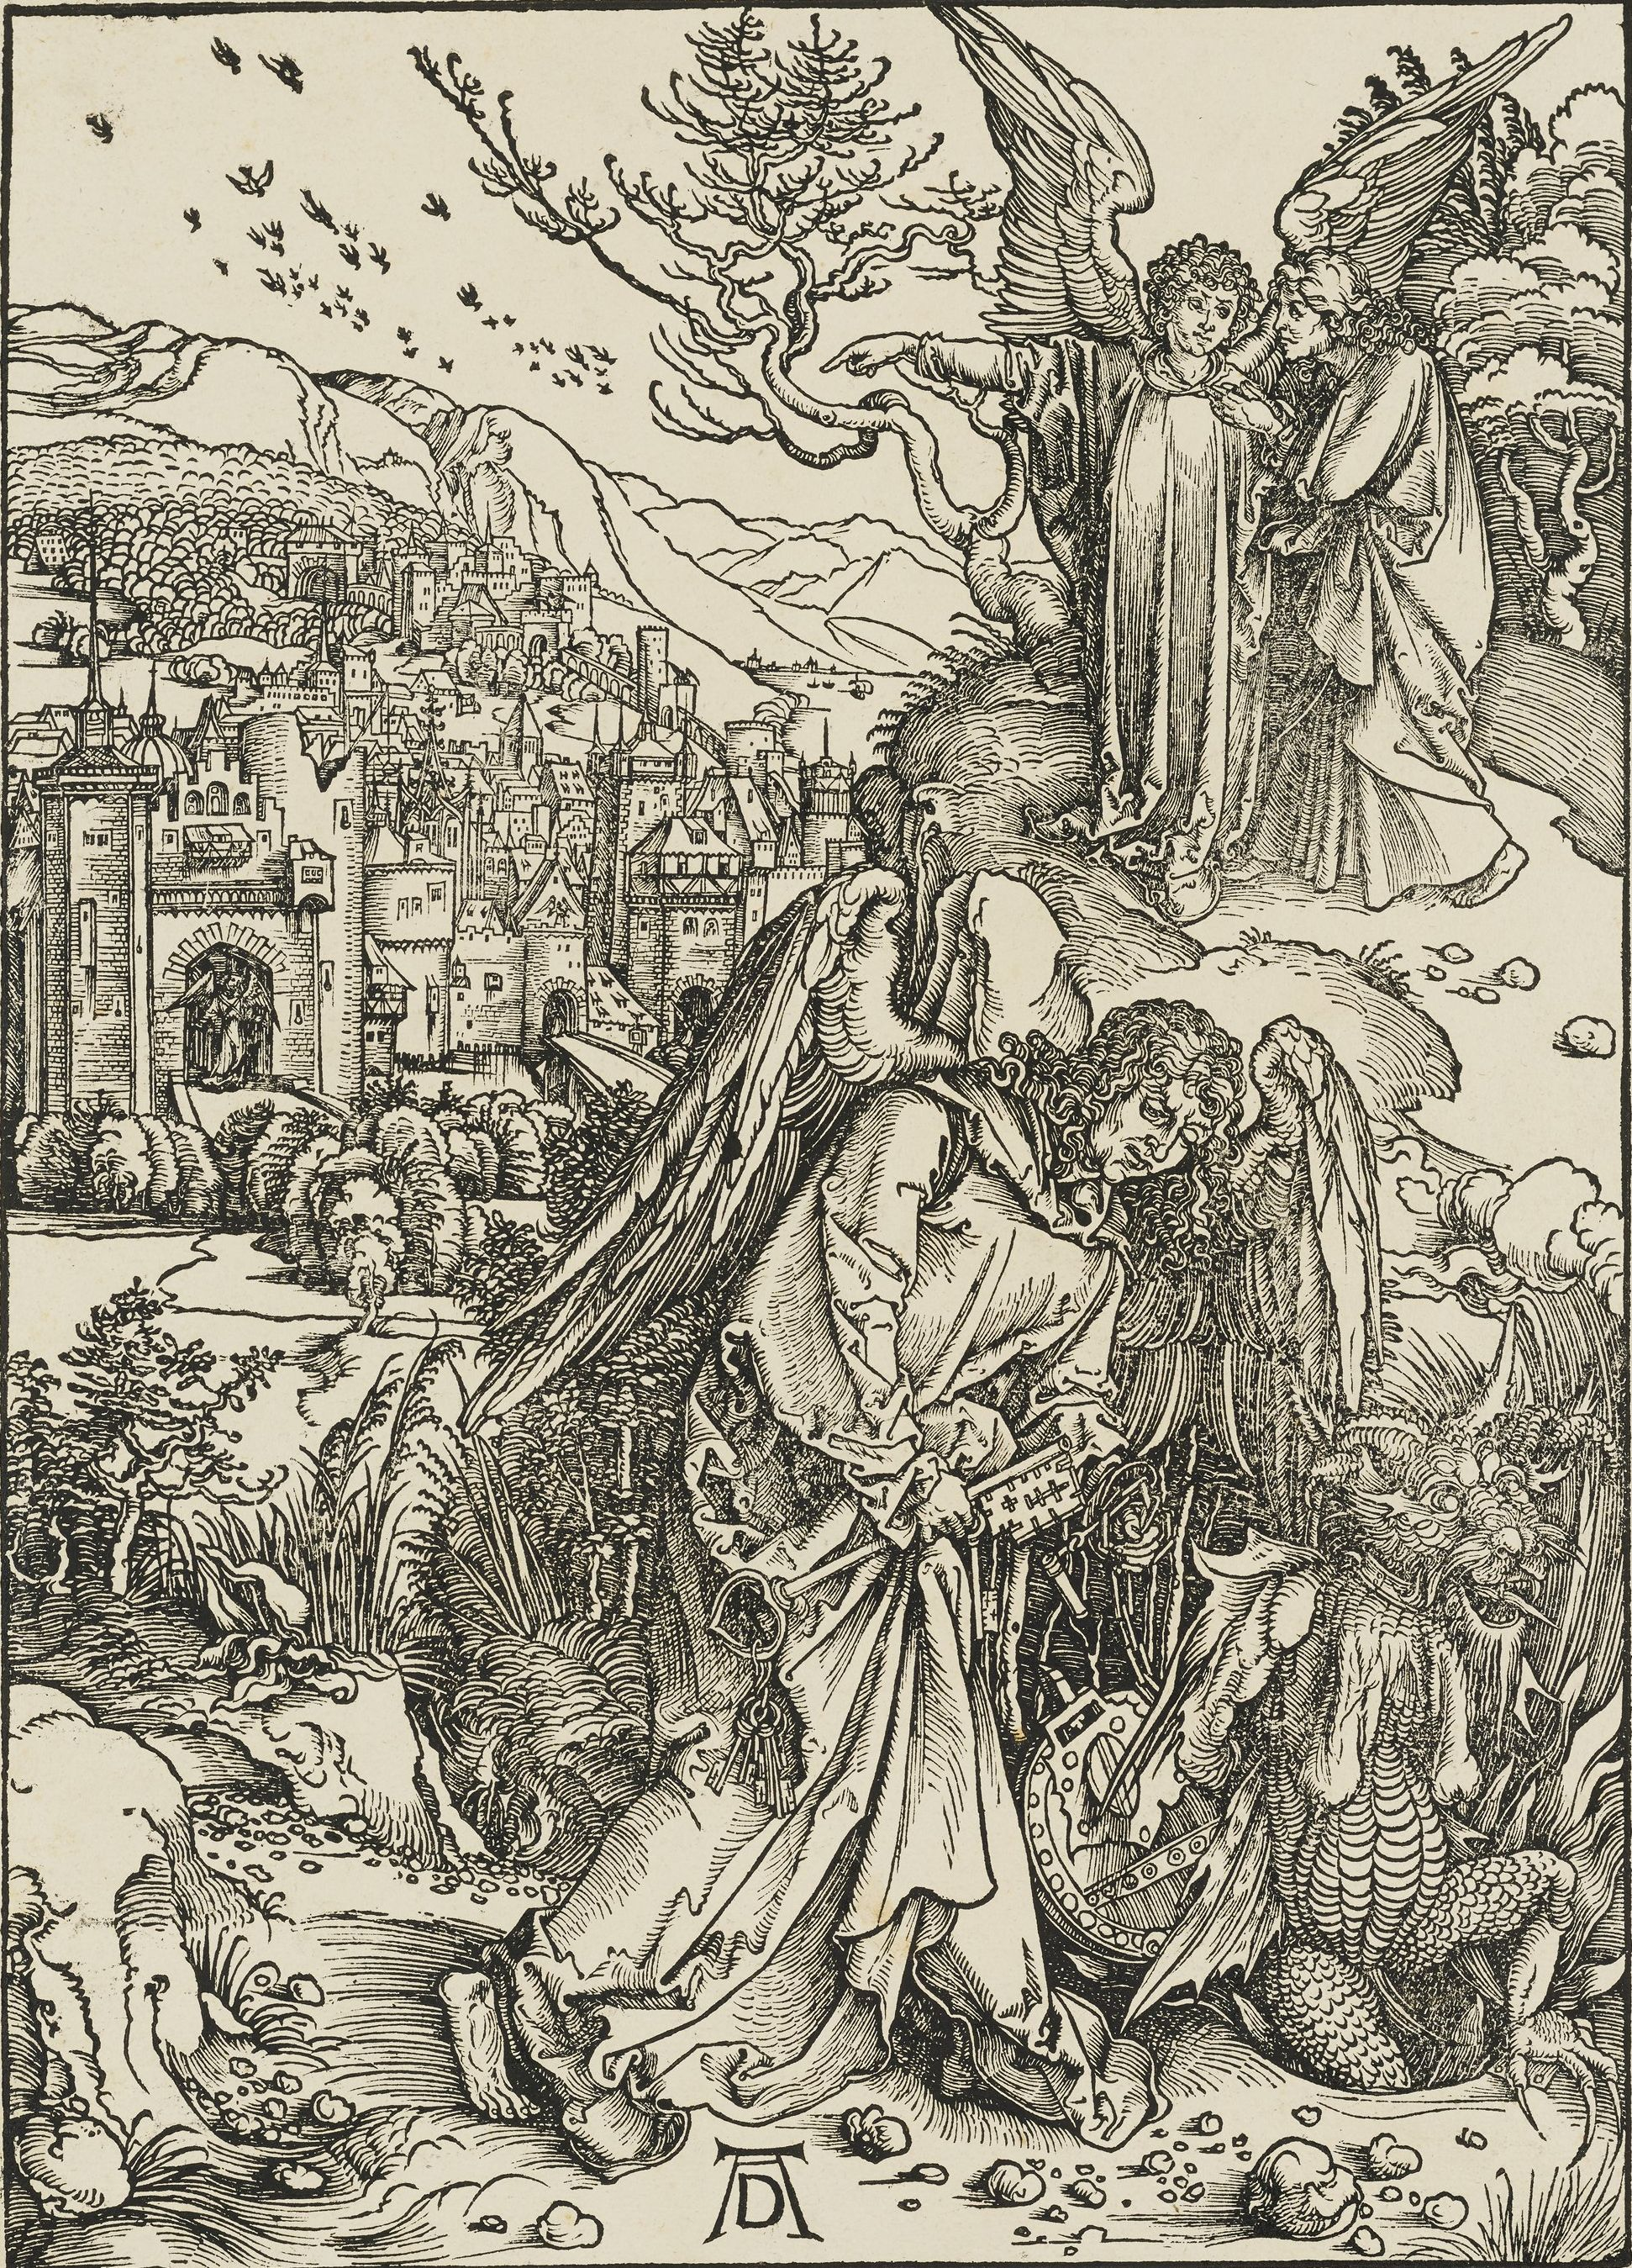 """Albrecht Dürer, """"The Angel with the Key to the Bottomless Pit,"""" 1498 (1511 edition), woodcut, plate 15 from the """"Apocalypse,"""" Gift of of Herschel V. Jones P.220"""